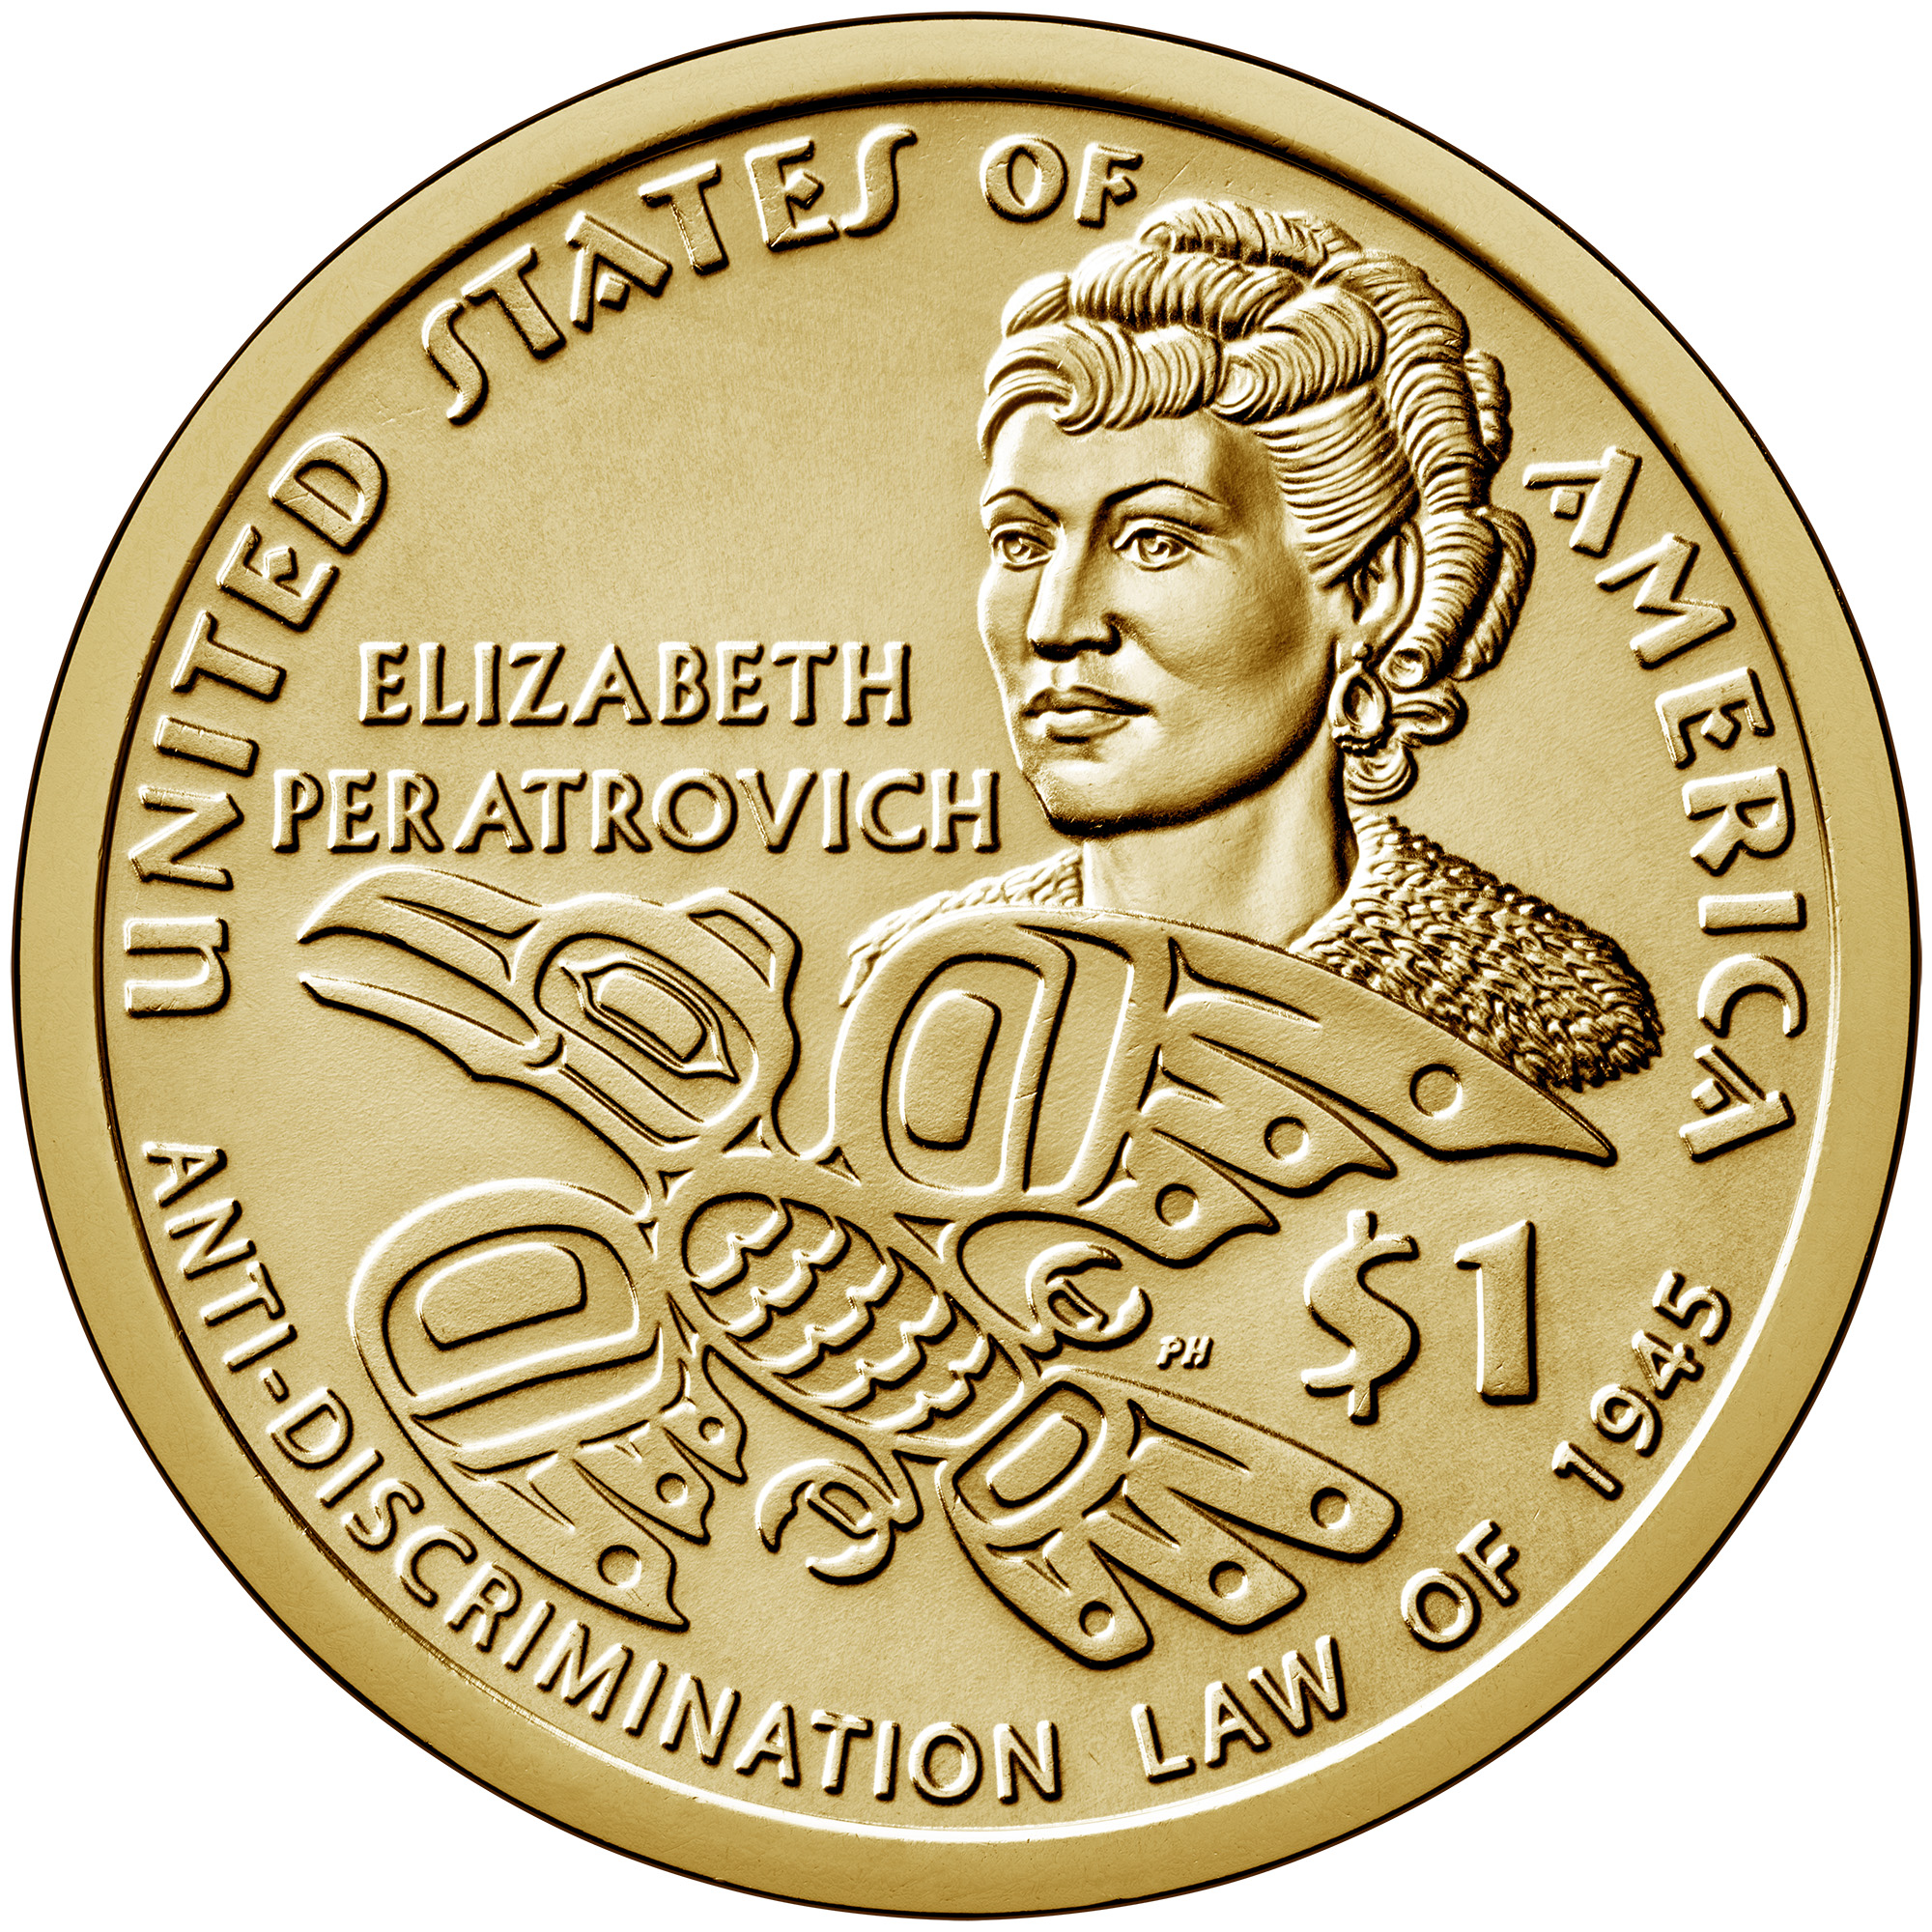 2020 Native American Dollar Reverse (Image Courtesy of The United States Mint)